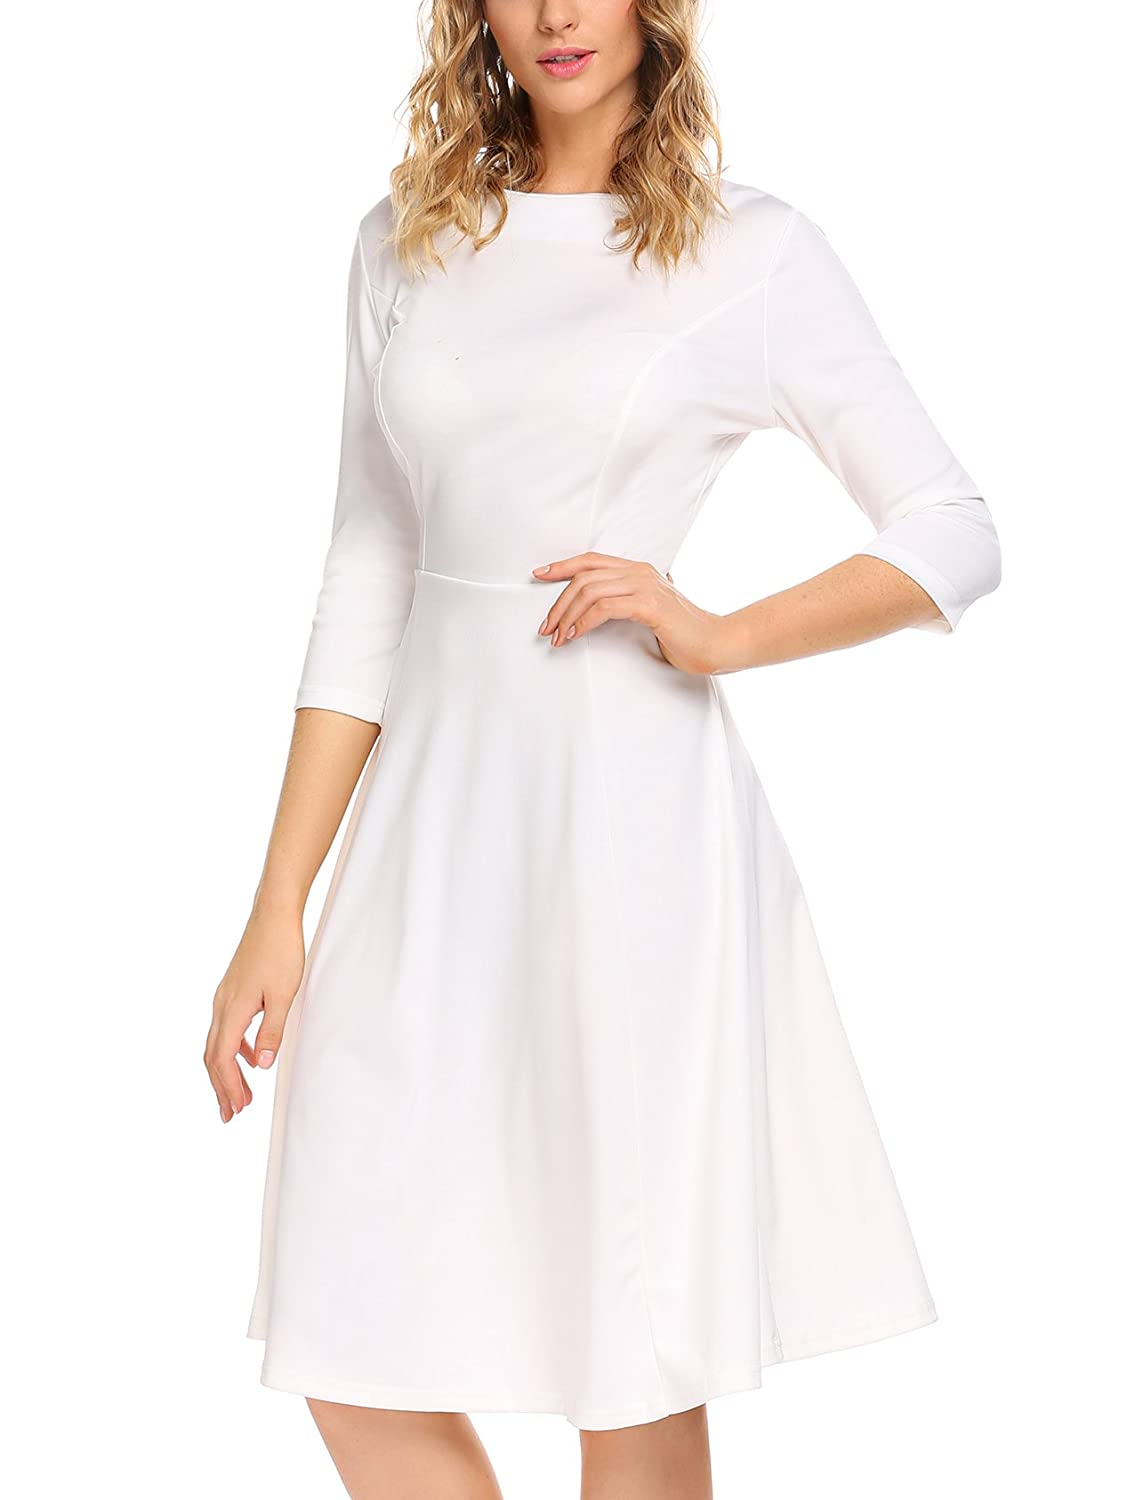 0a9bbc3b01 Feature:Rounded neckline/3/4 Sleeve/A-line Design/Knee Length/High  Elasticity/Solid color/Swing Hem. Material: 95% rayon and 5% spandex,The  stretchy fabric ...